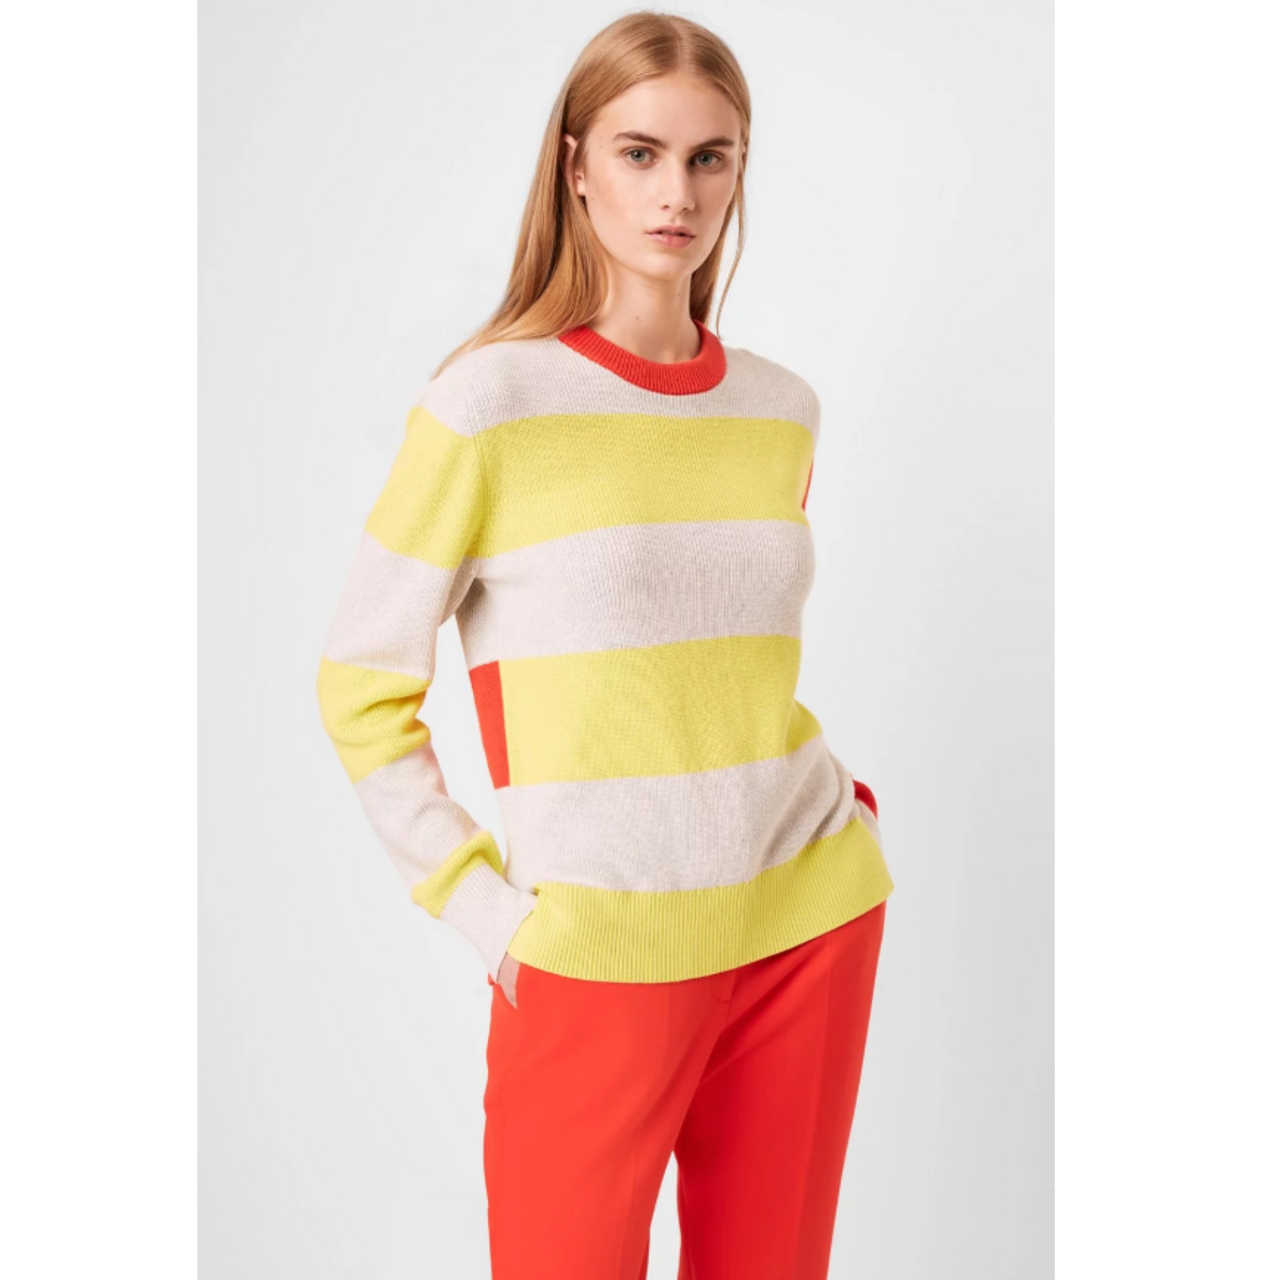 French Connection Nuka Neon Stripe Cotton Knit 78NAM